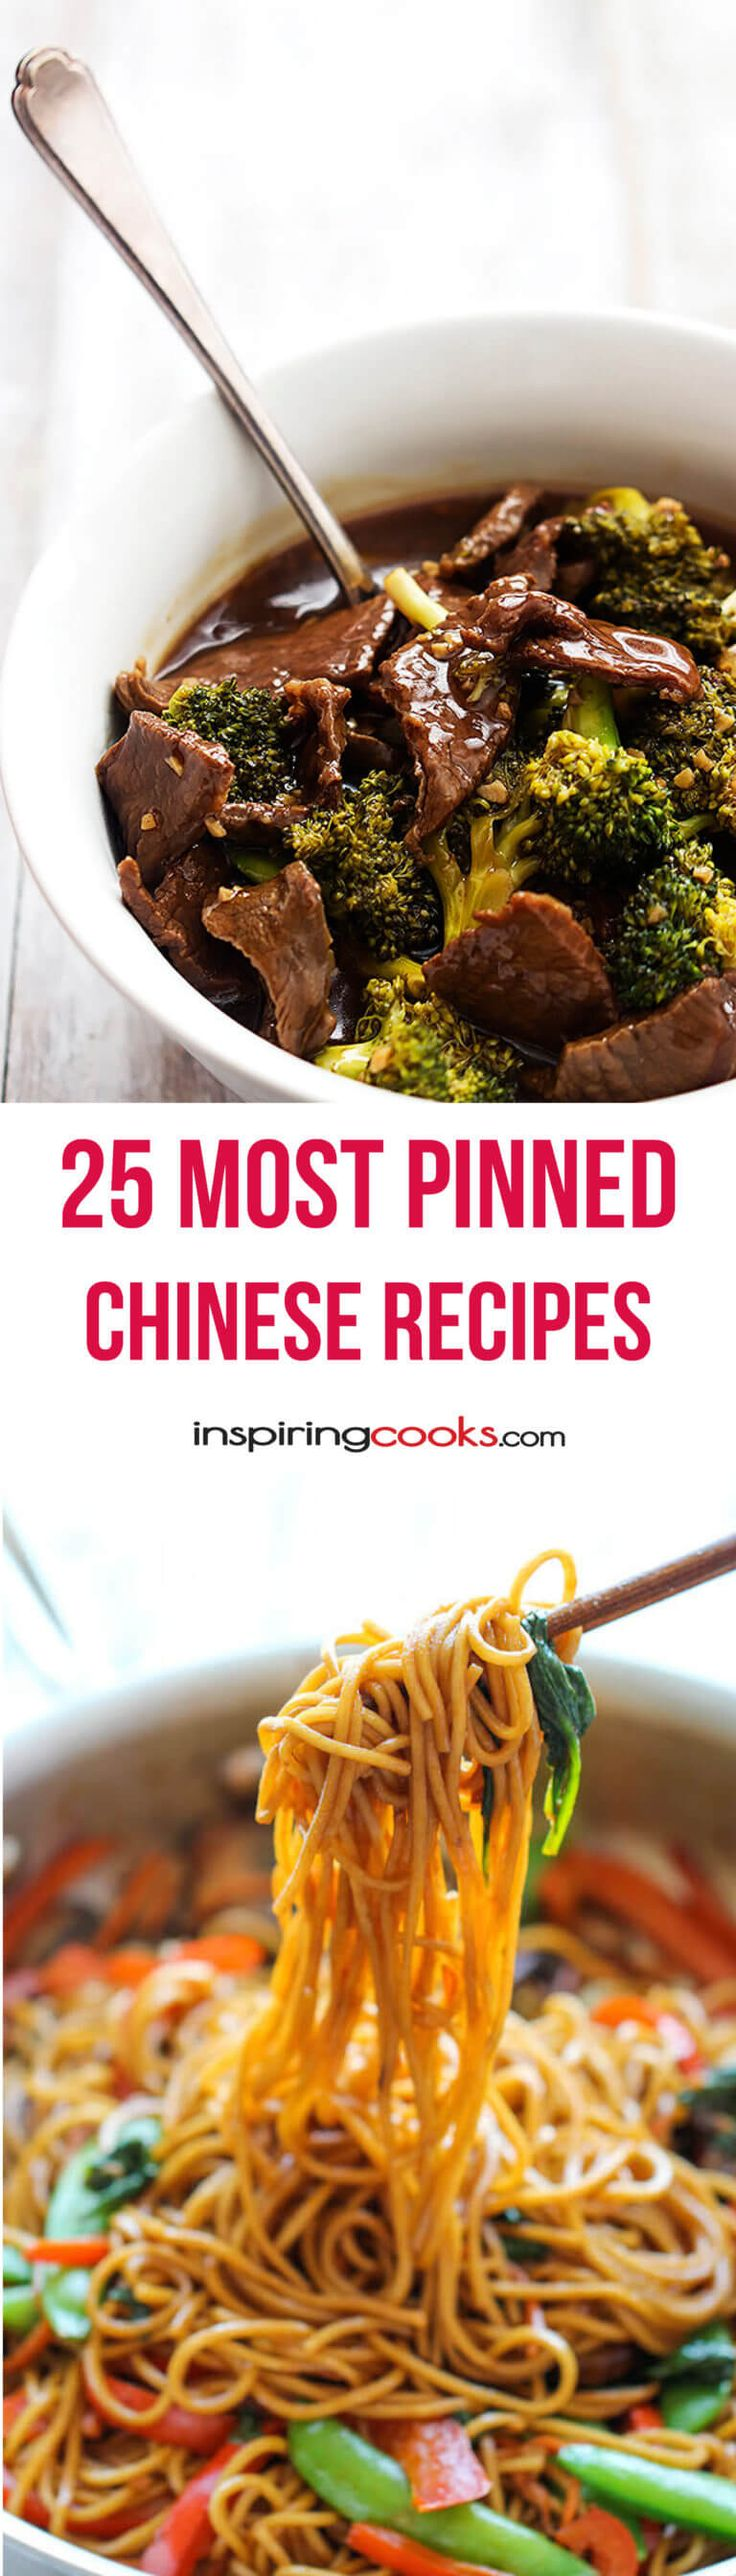 25 Most Pinned Chinese Recipes